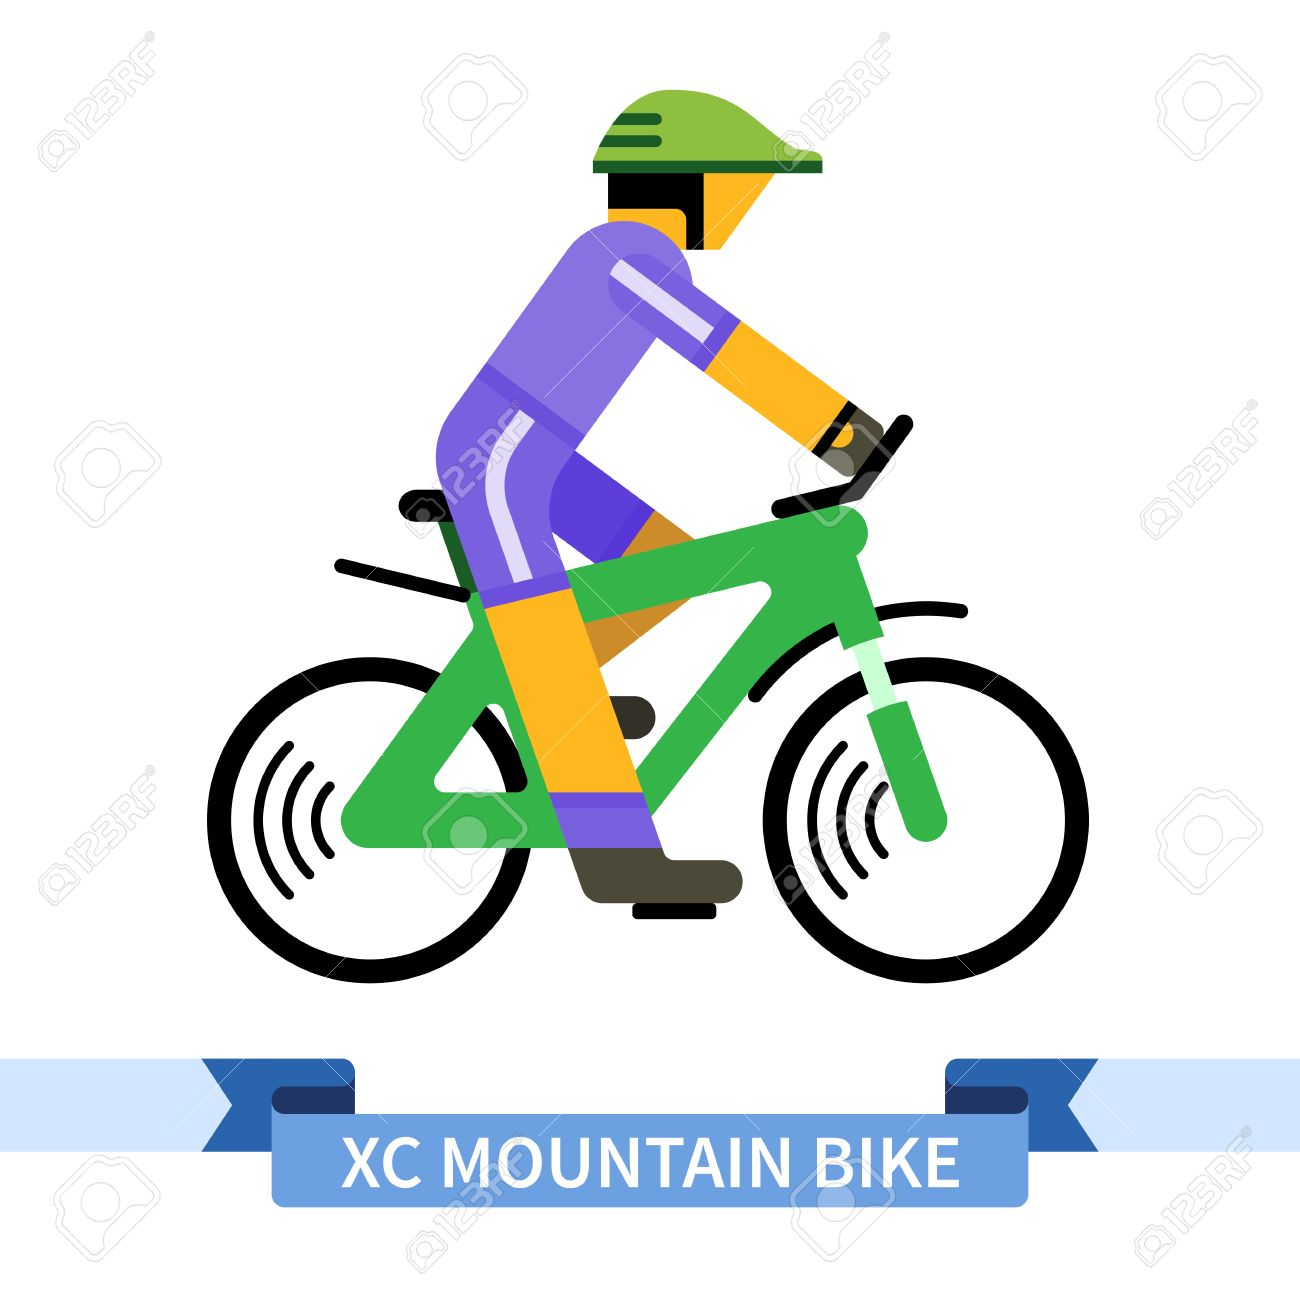 1300x1300 Bicyclist On Cross Country Mountain Bike. Simple Side View Clipart